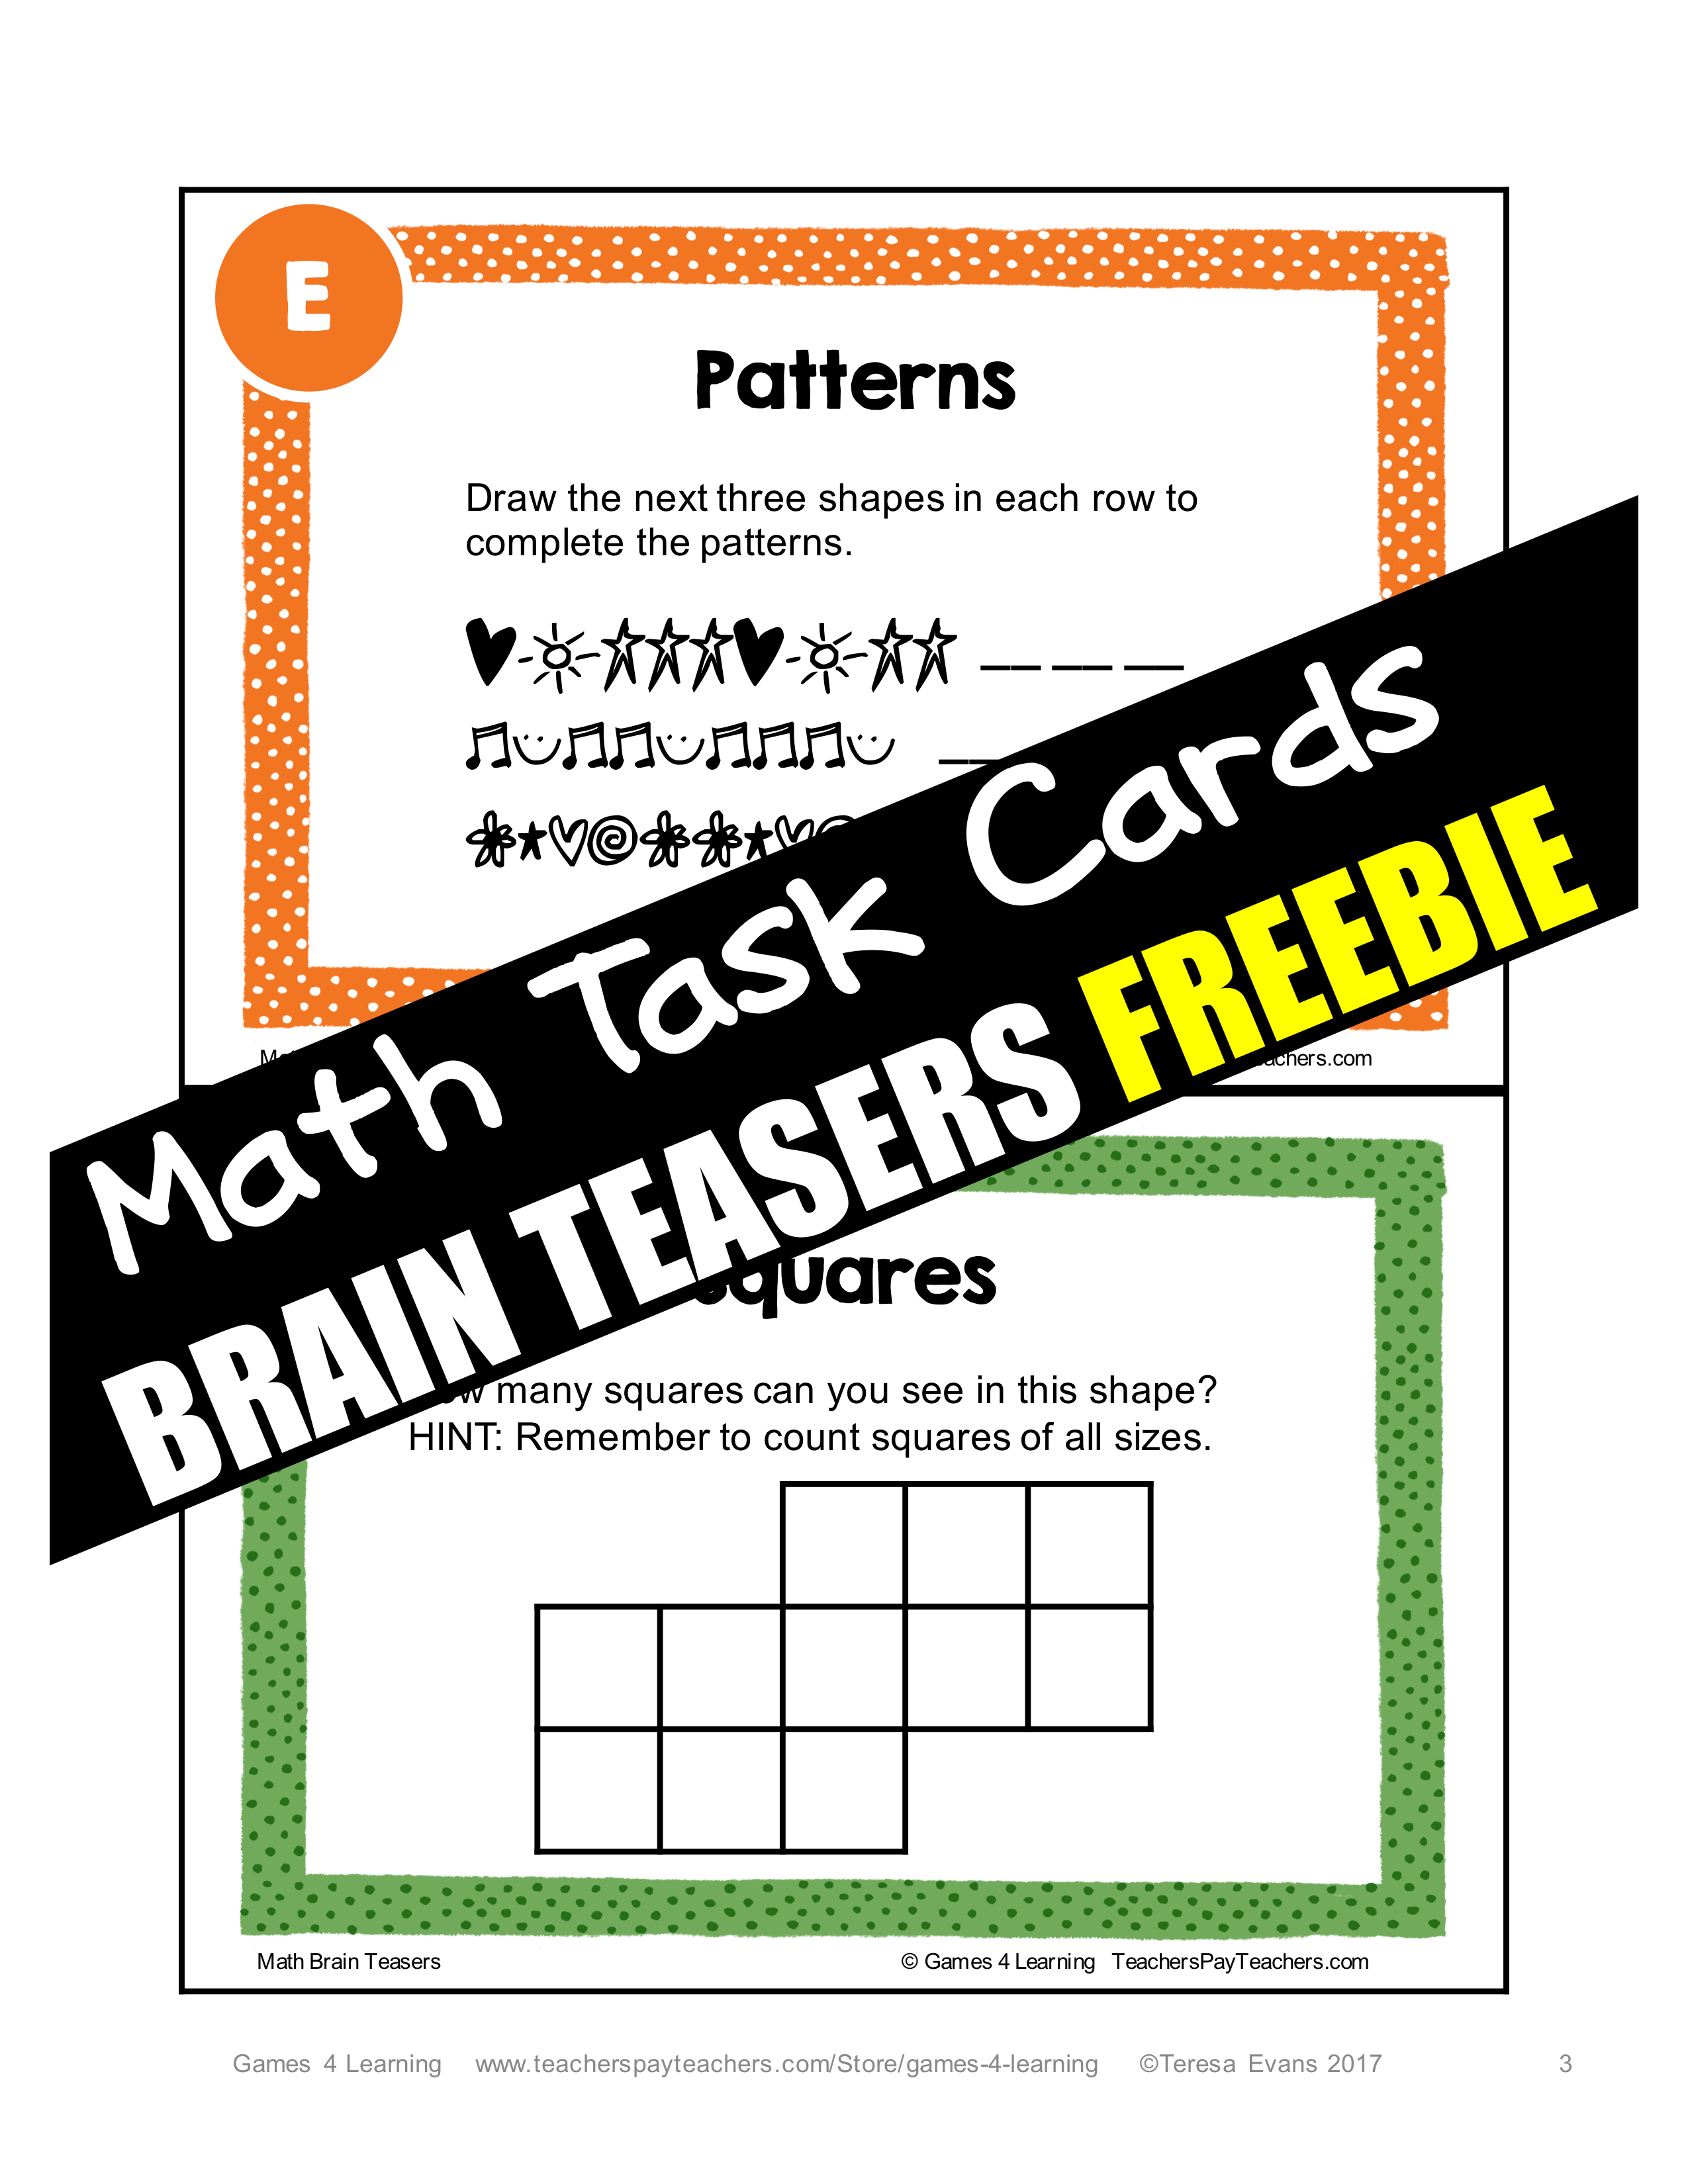 Freebie Printable Math Problems And Math Brain Teaser Task Cards From Games 4 Learning This Set Contains 7 Math Brain Tease Brain Teasers Math Task Cards Math [ 3300 x 2550 Pixel ]